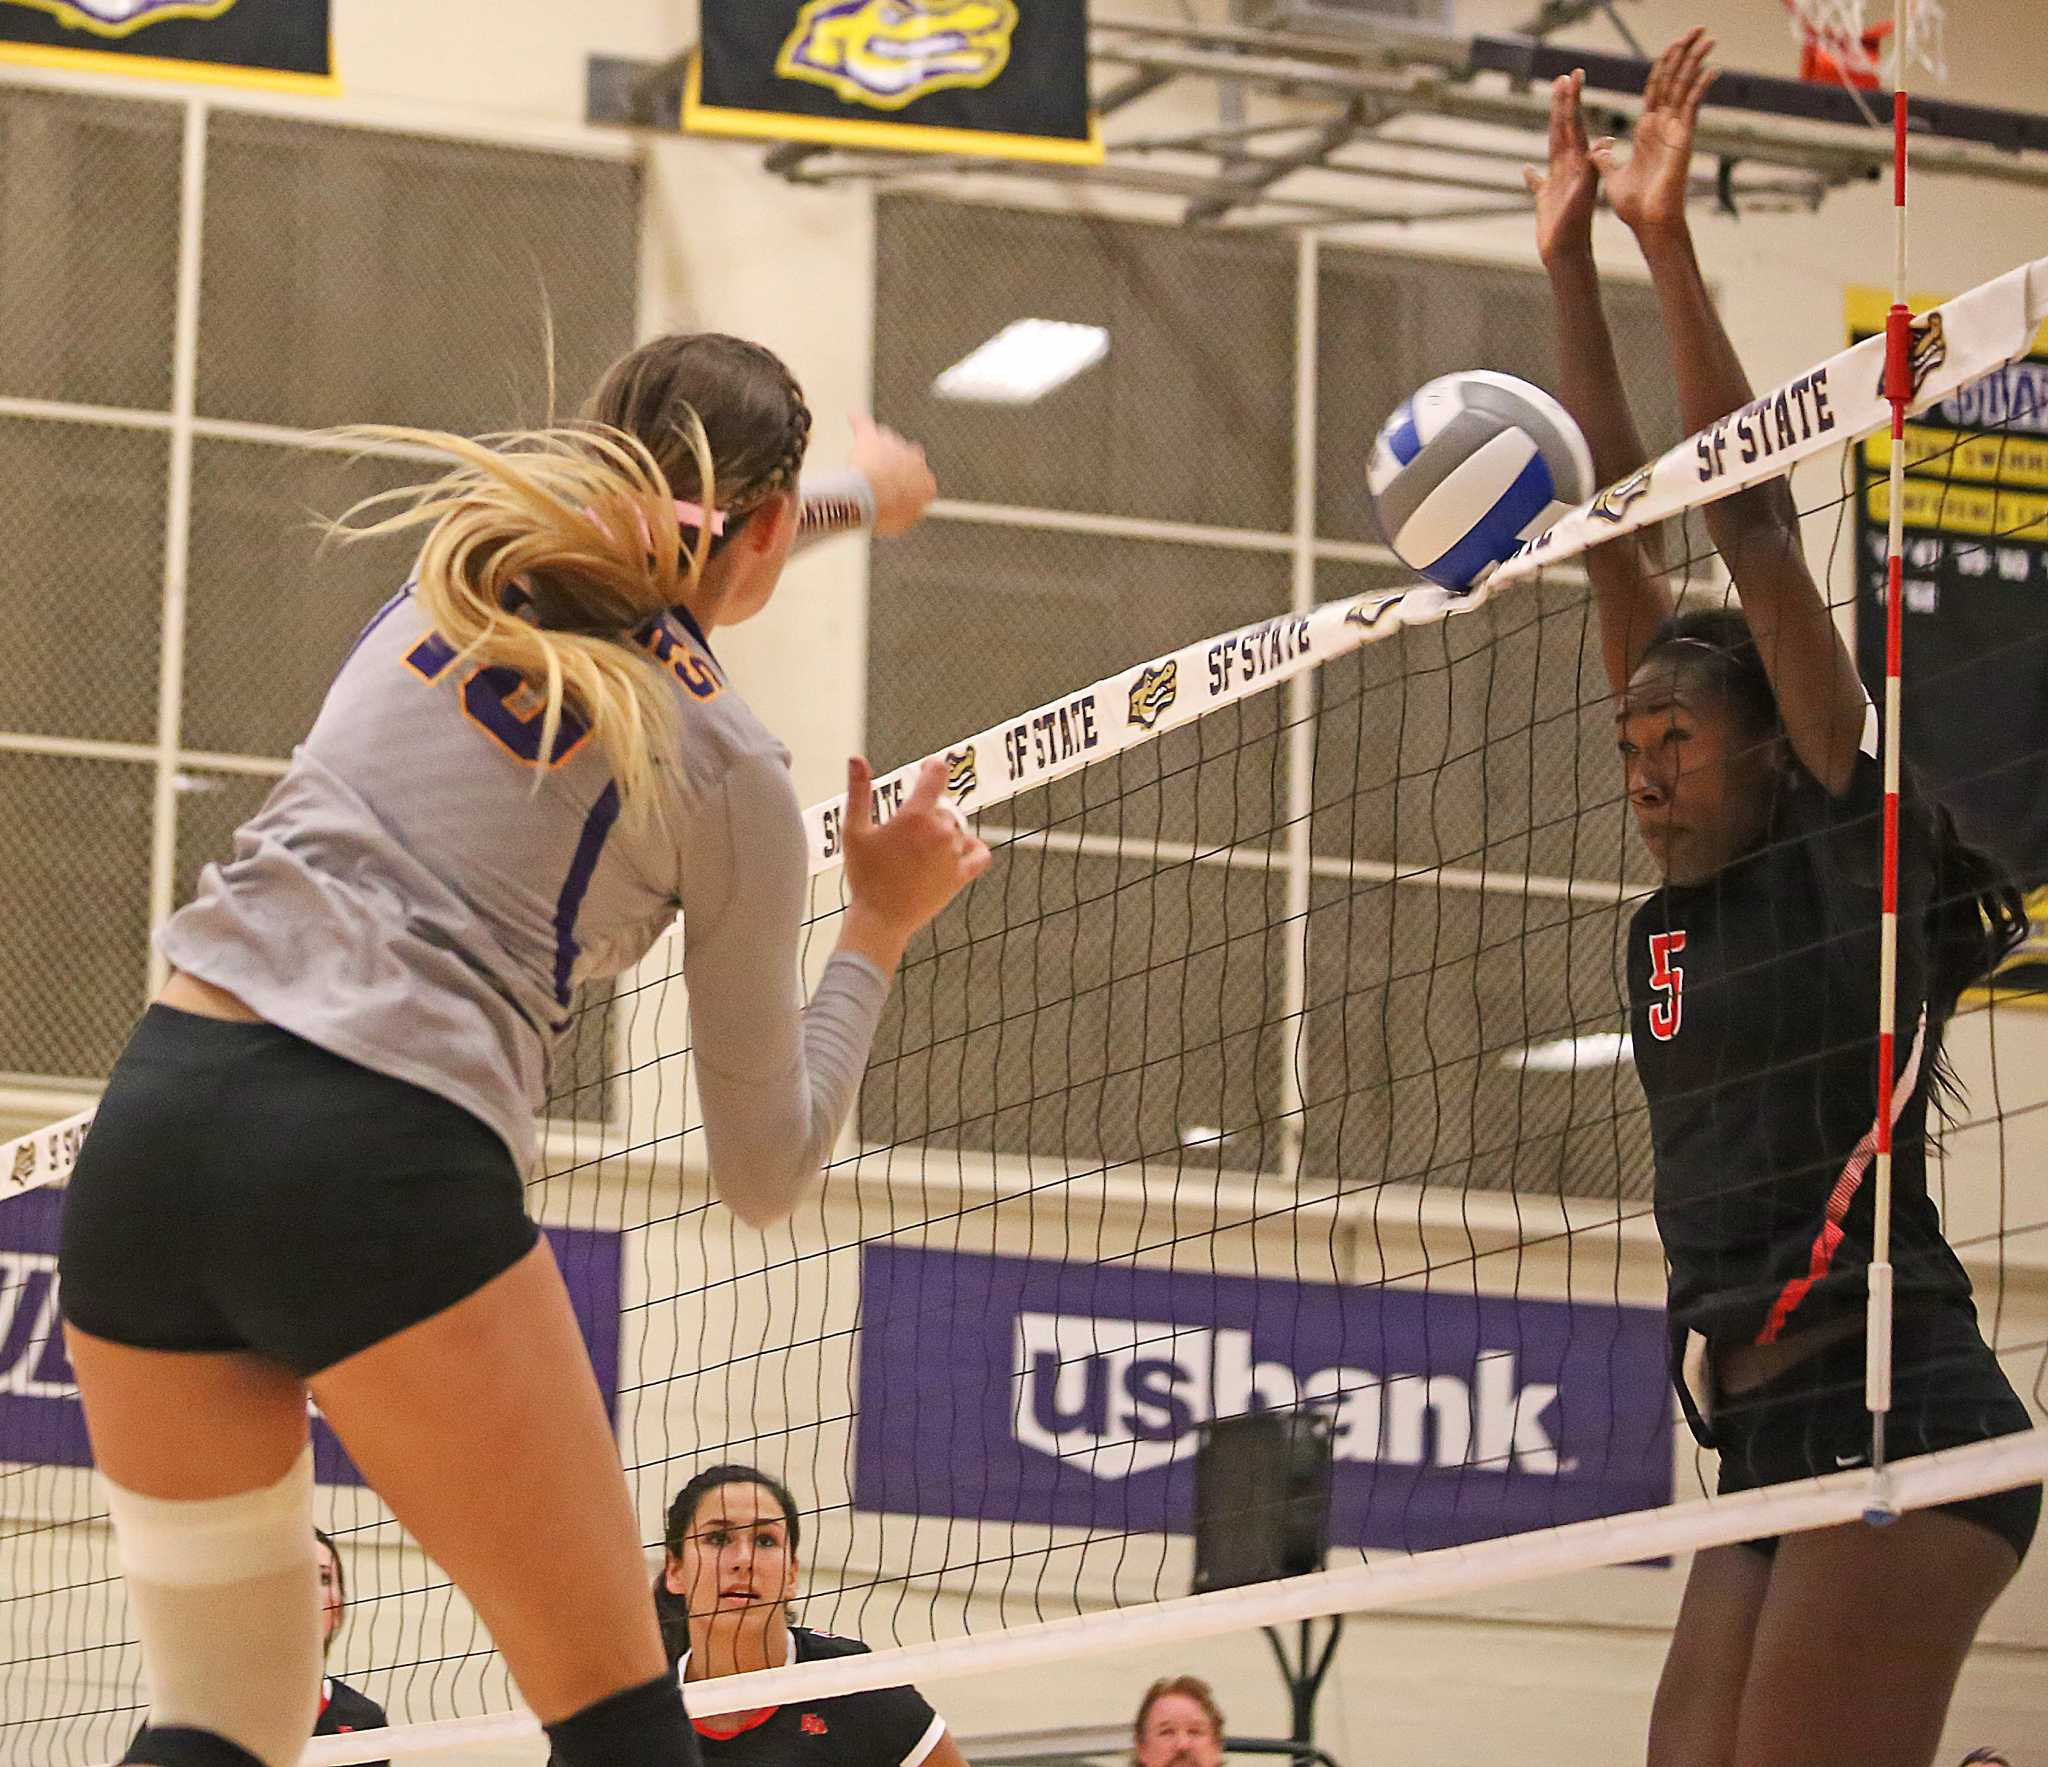 SF State Gators' outside hitter Christine Johnson (18) fires the ball into the net during their loss to Cal State East Bay on Friday, Oct. 21, 2016. The Gators lost three out of the four sets to the Pioneers.